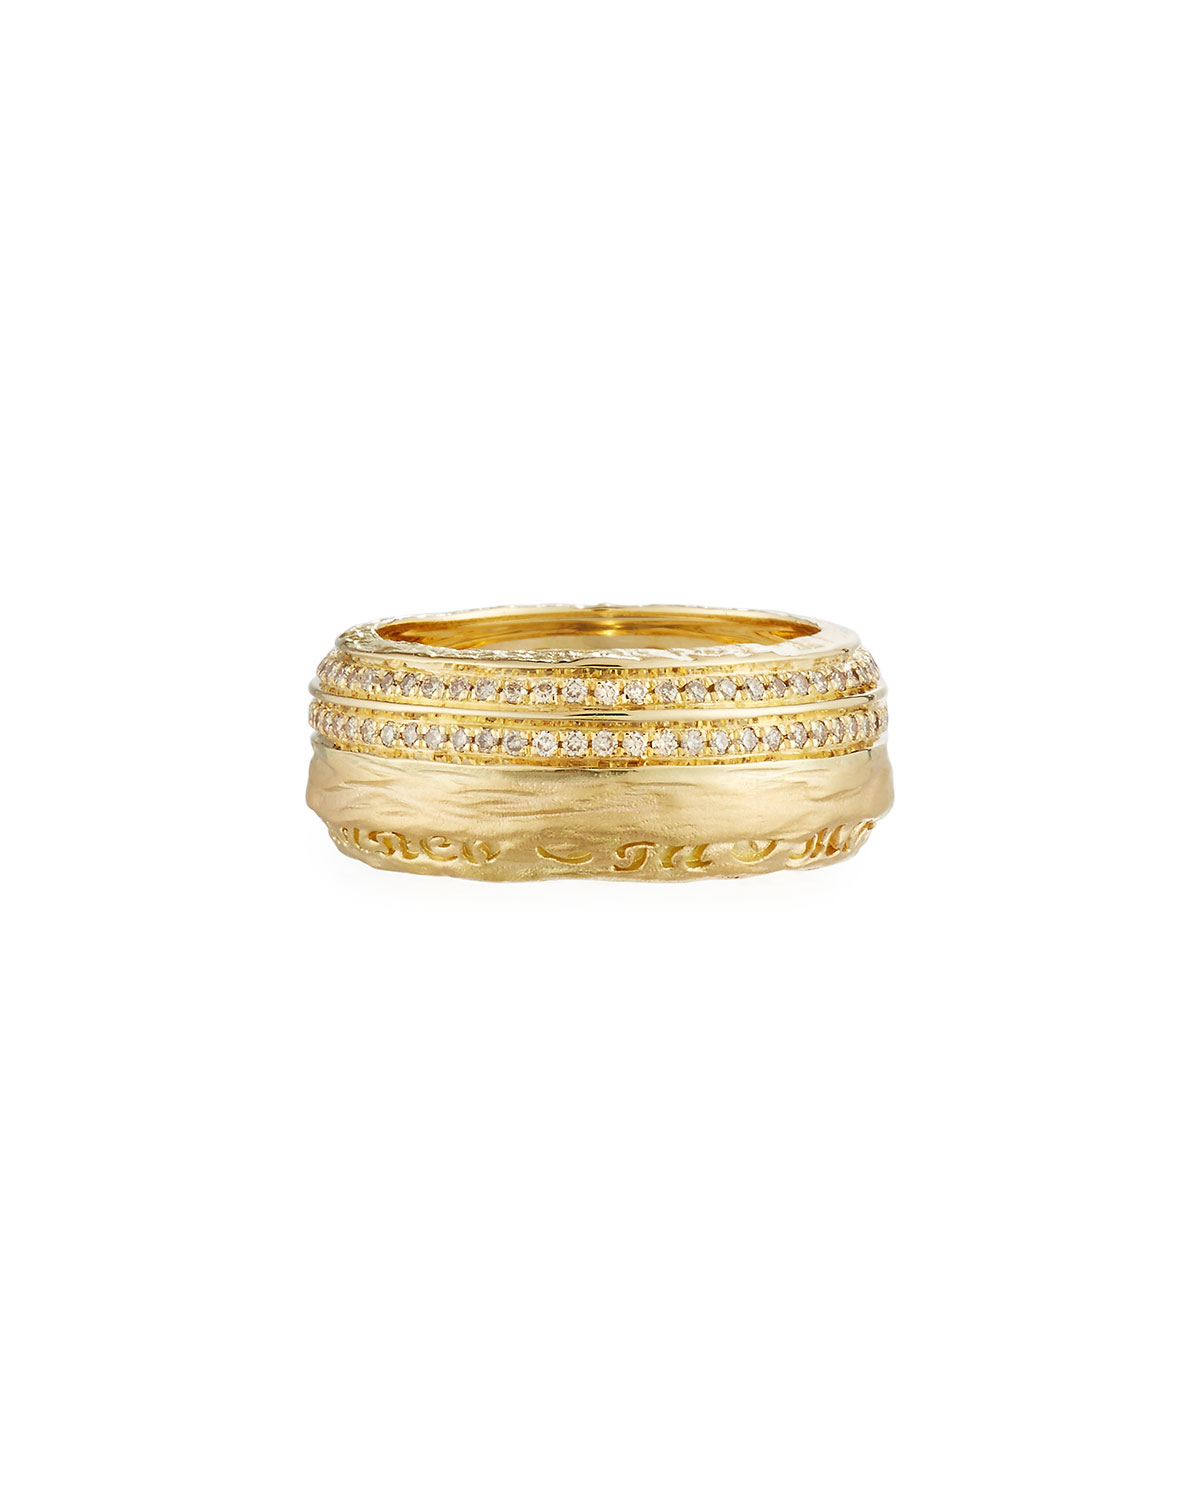 The Other Half Men's 18K Band Ring with Diamonds